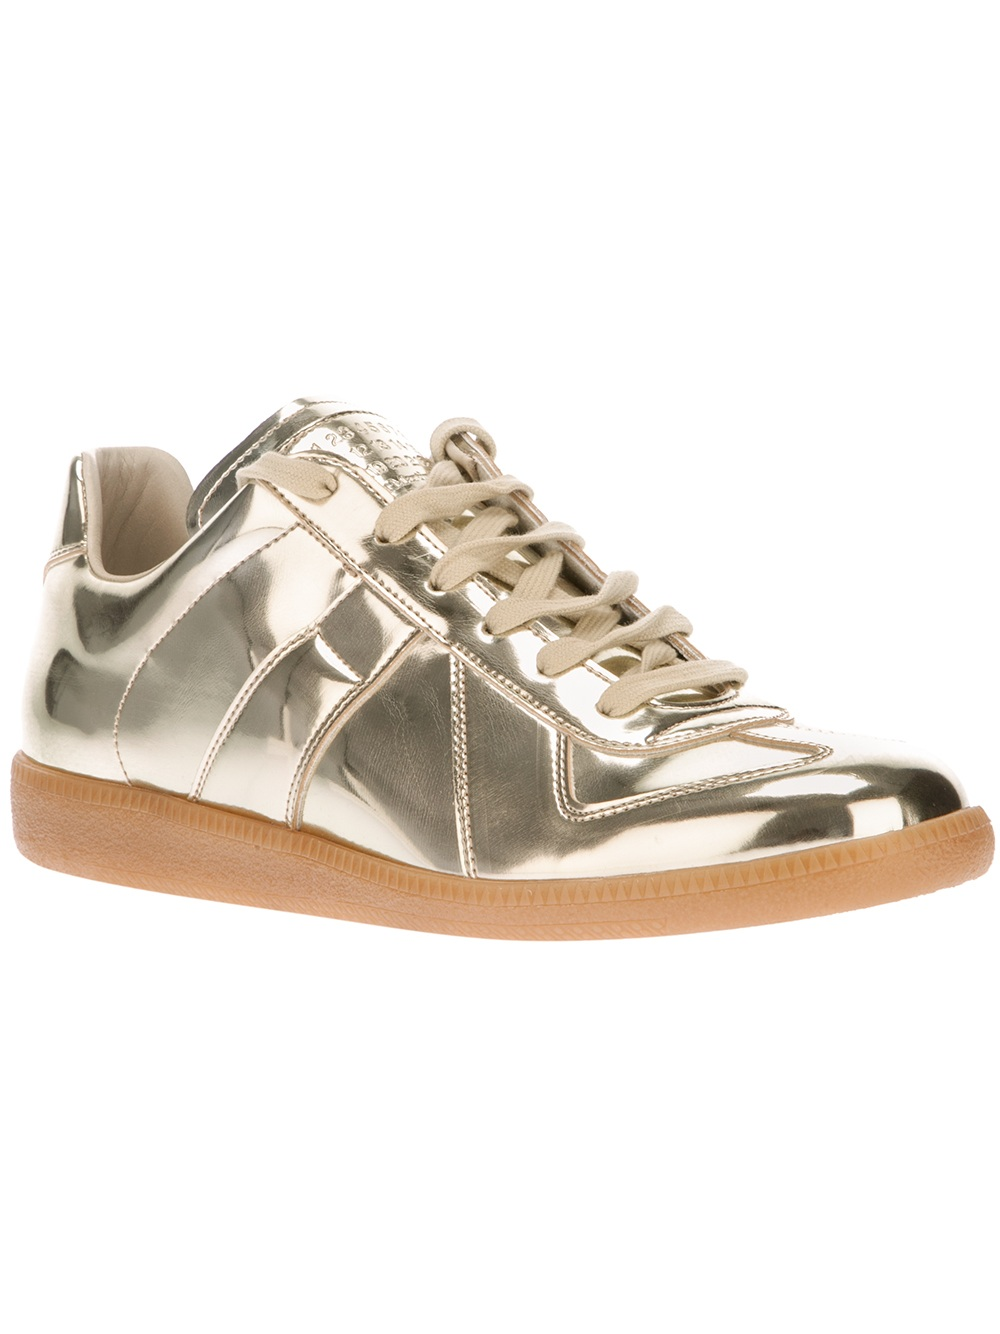 Maison martin margiela metallic replica sneaker in silver for Replica maison martin margiela